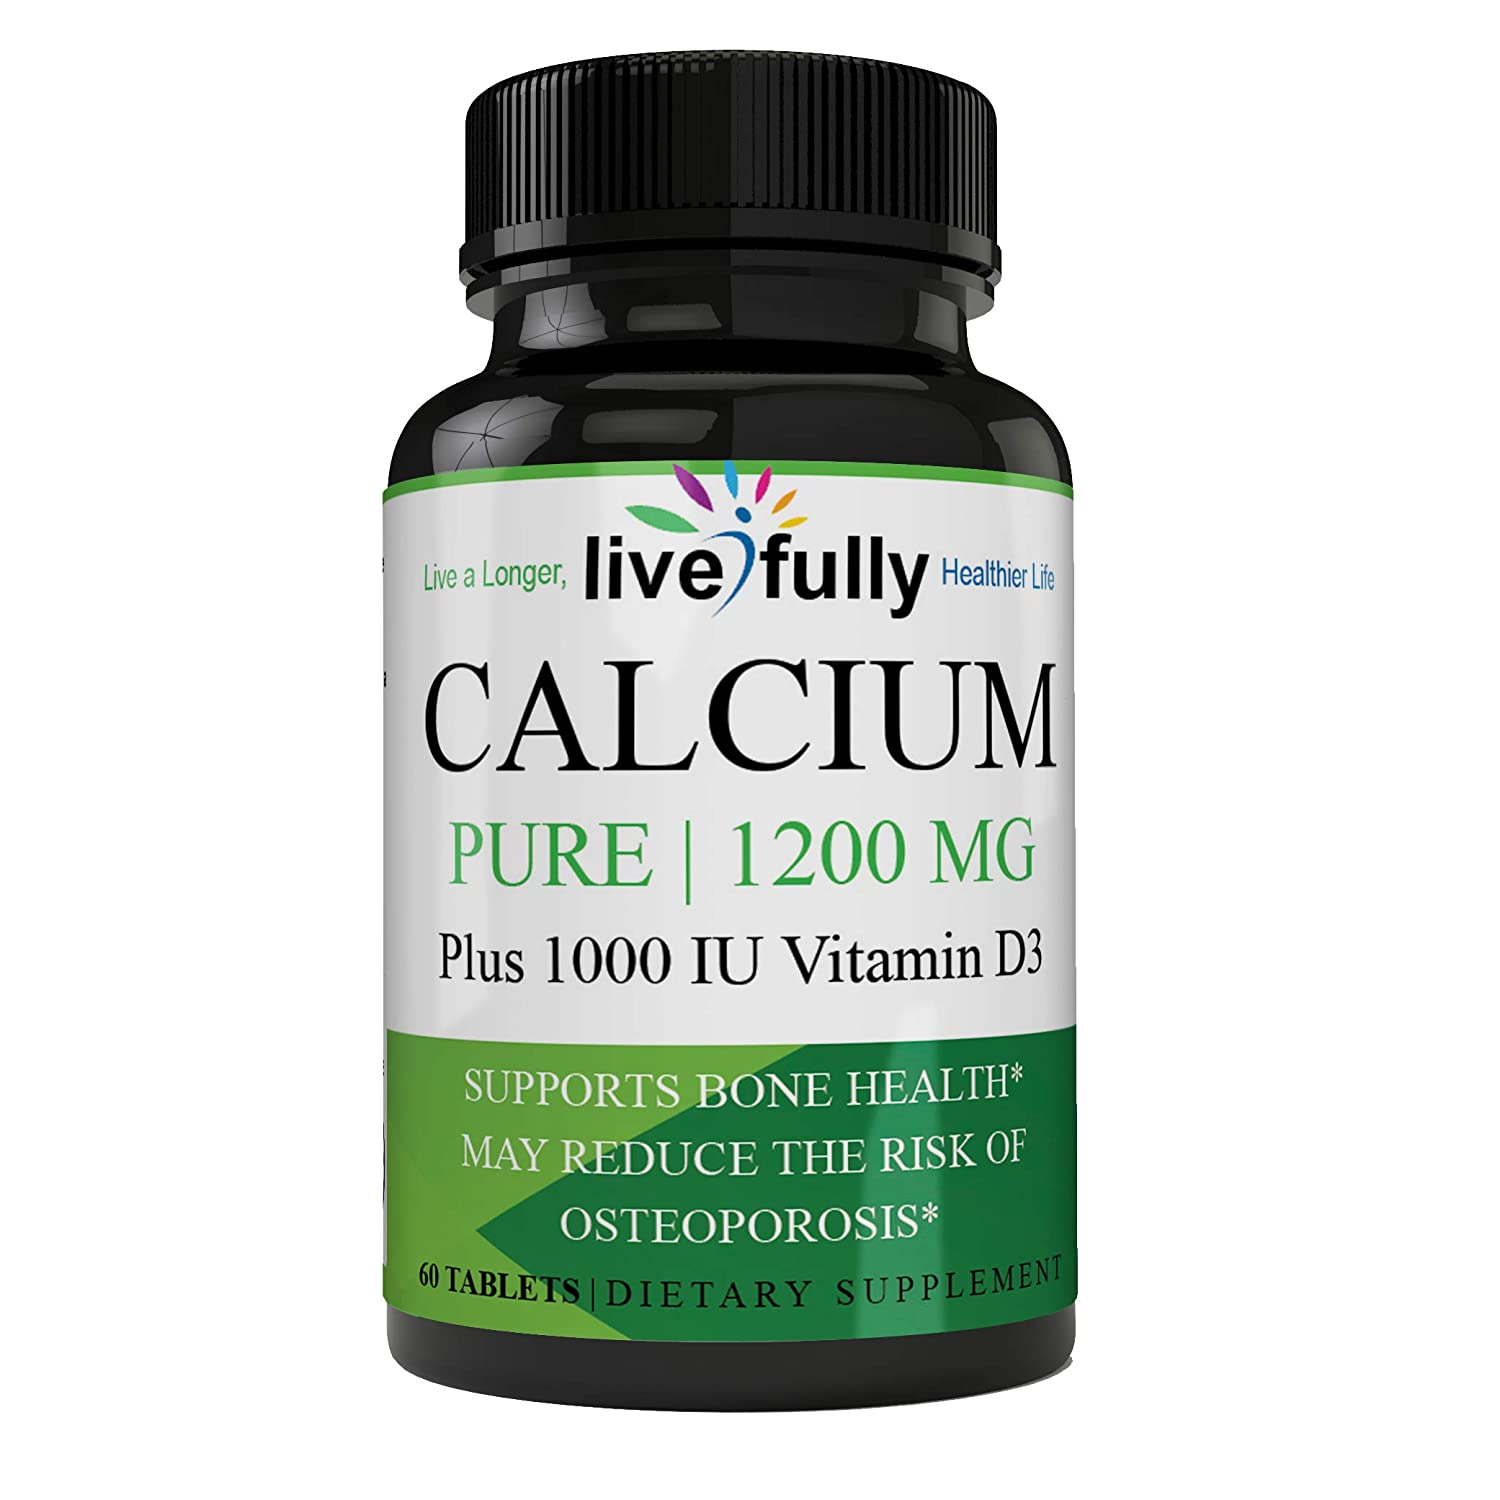 Calcium Supplement - Bone Strength Clinical Strength Plant Plus Vitamin D3 Excellent Source of Calcium 1200 MG High Potency